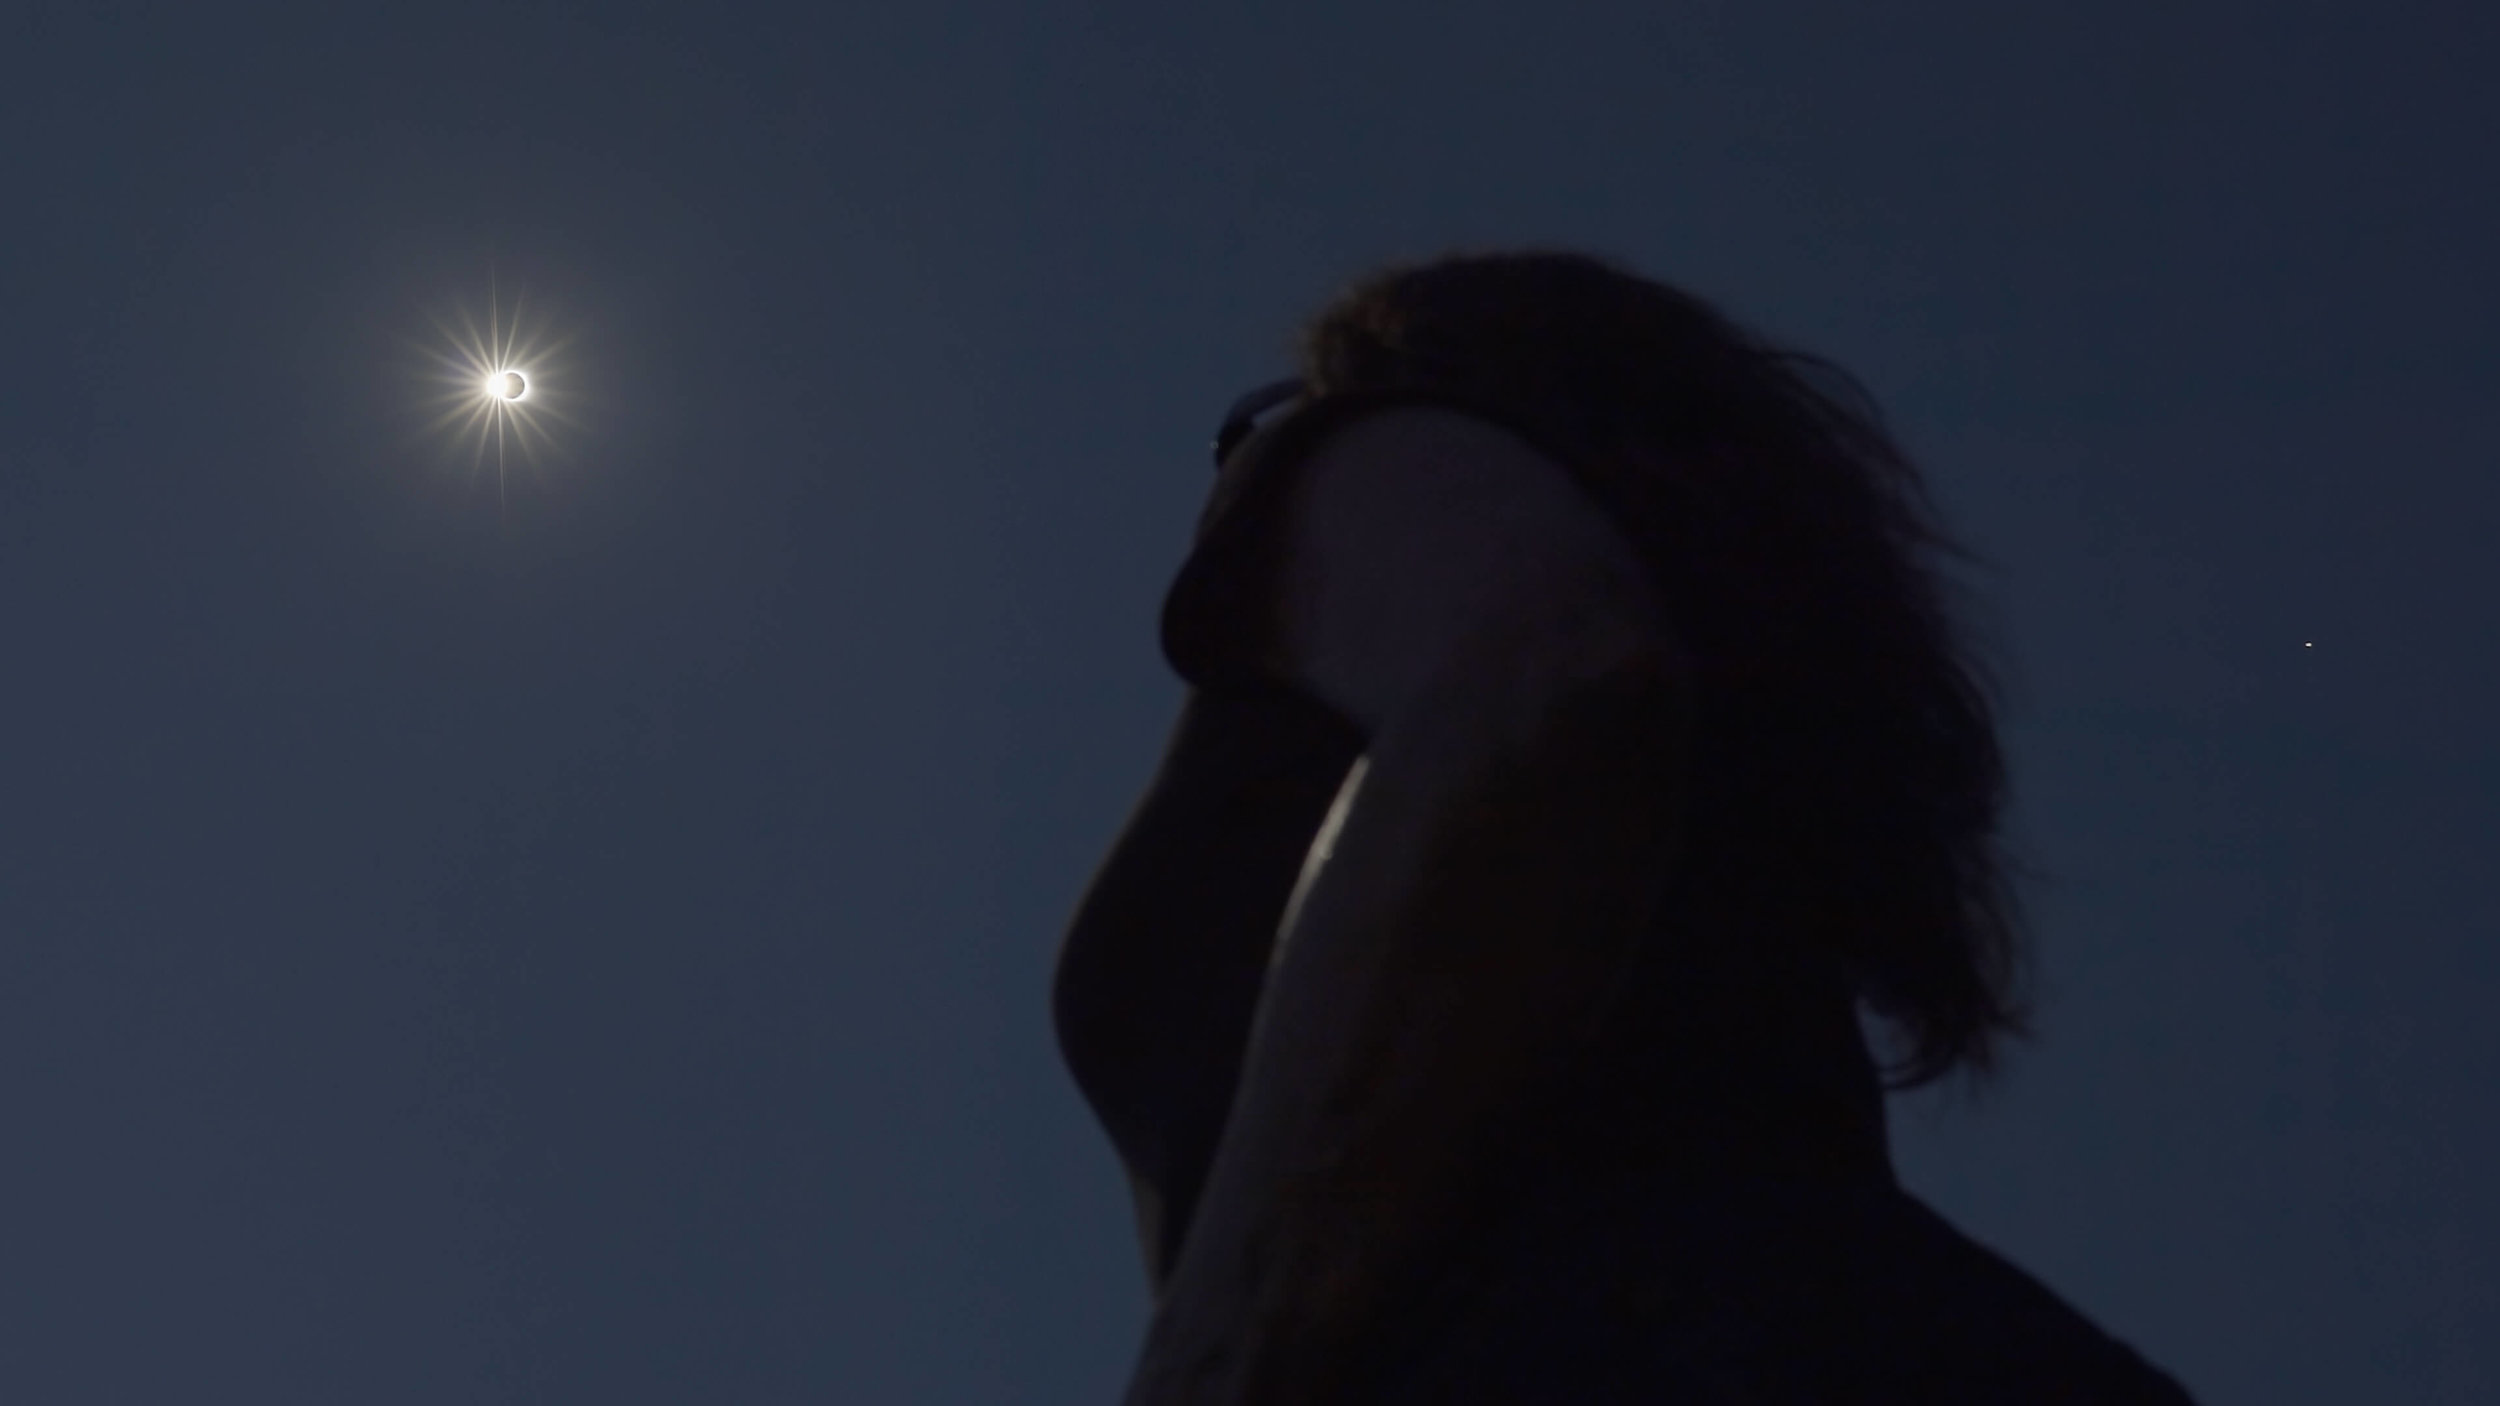 filming during eclipse.JPG